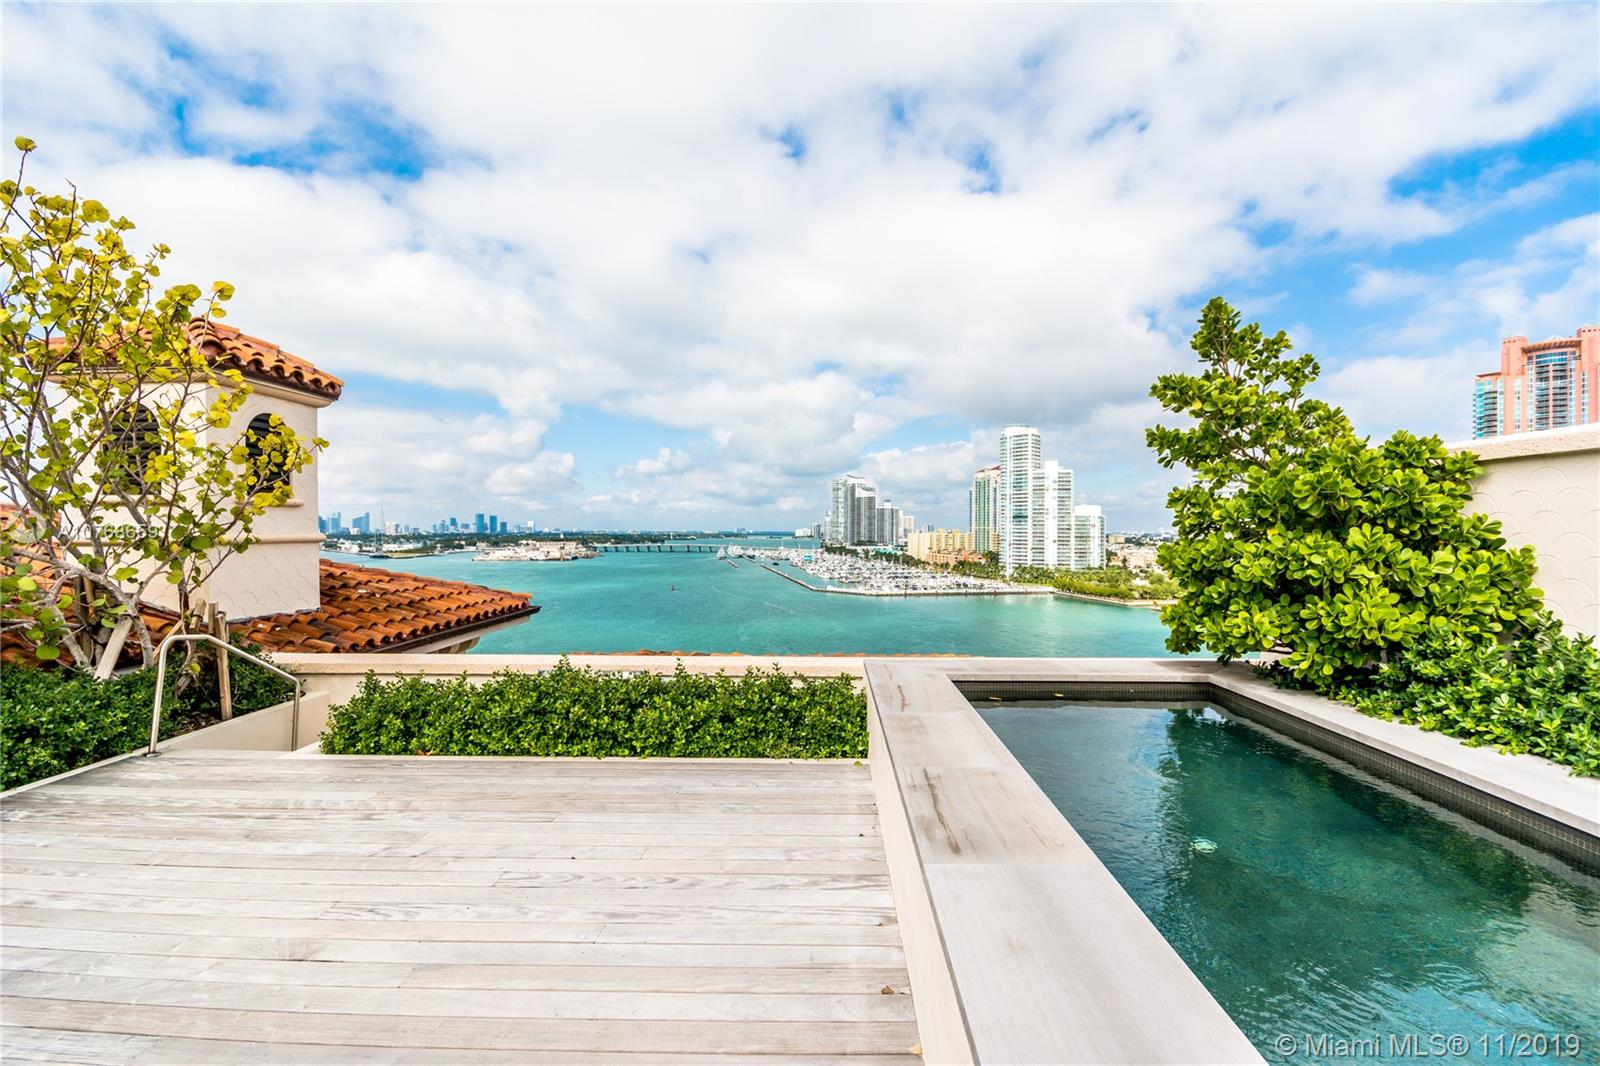 LAST TROPHY PENTHOUSE WITH ROOFTOP POOL + PRIVATE DECK AT PALAZZO DEL SOL IS A DESIGNER'S DREAM! This 4 Bed/4.5 Bath Open Floorplan features 6,644 Interior SF + 5,171 total SF on 2 Terraces (as per seller). Enzo Enea-Designed Private Rooftop Terrace for Entertaining w/Zero-edge Pool, Ipe Wood Deck & Pergola + Viking Outdoor Summer Kitchen. West Exposure offers Gorgeous Panoramic Vistas of Star Island, Biscayne Bay, South Beach + Ocean. Guest Suites enjoy Sunset + Fisher Island Golf Course Views. Private Elevator into Expansive Living Areas w/Soaring 18' Ceilings. Boffi Gourmet Chef's Kitchen in White w/Gaggenau appliances. Boffi Master Bath w/Statuary BookMatched Marble, Boffi Bathtub & Dornbracht + Duravit fixtures. Full-Service Building w/6-Star Amenities including Sunrise + Sunset Pools